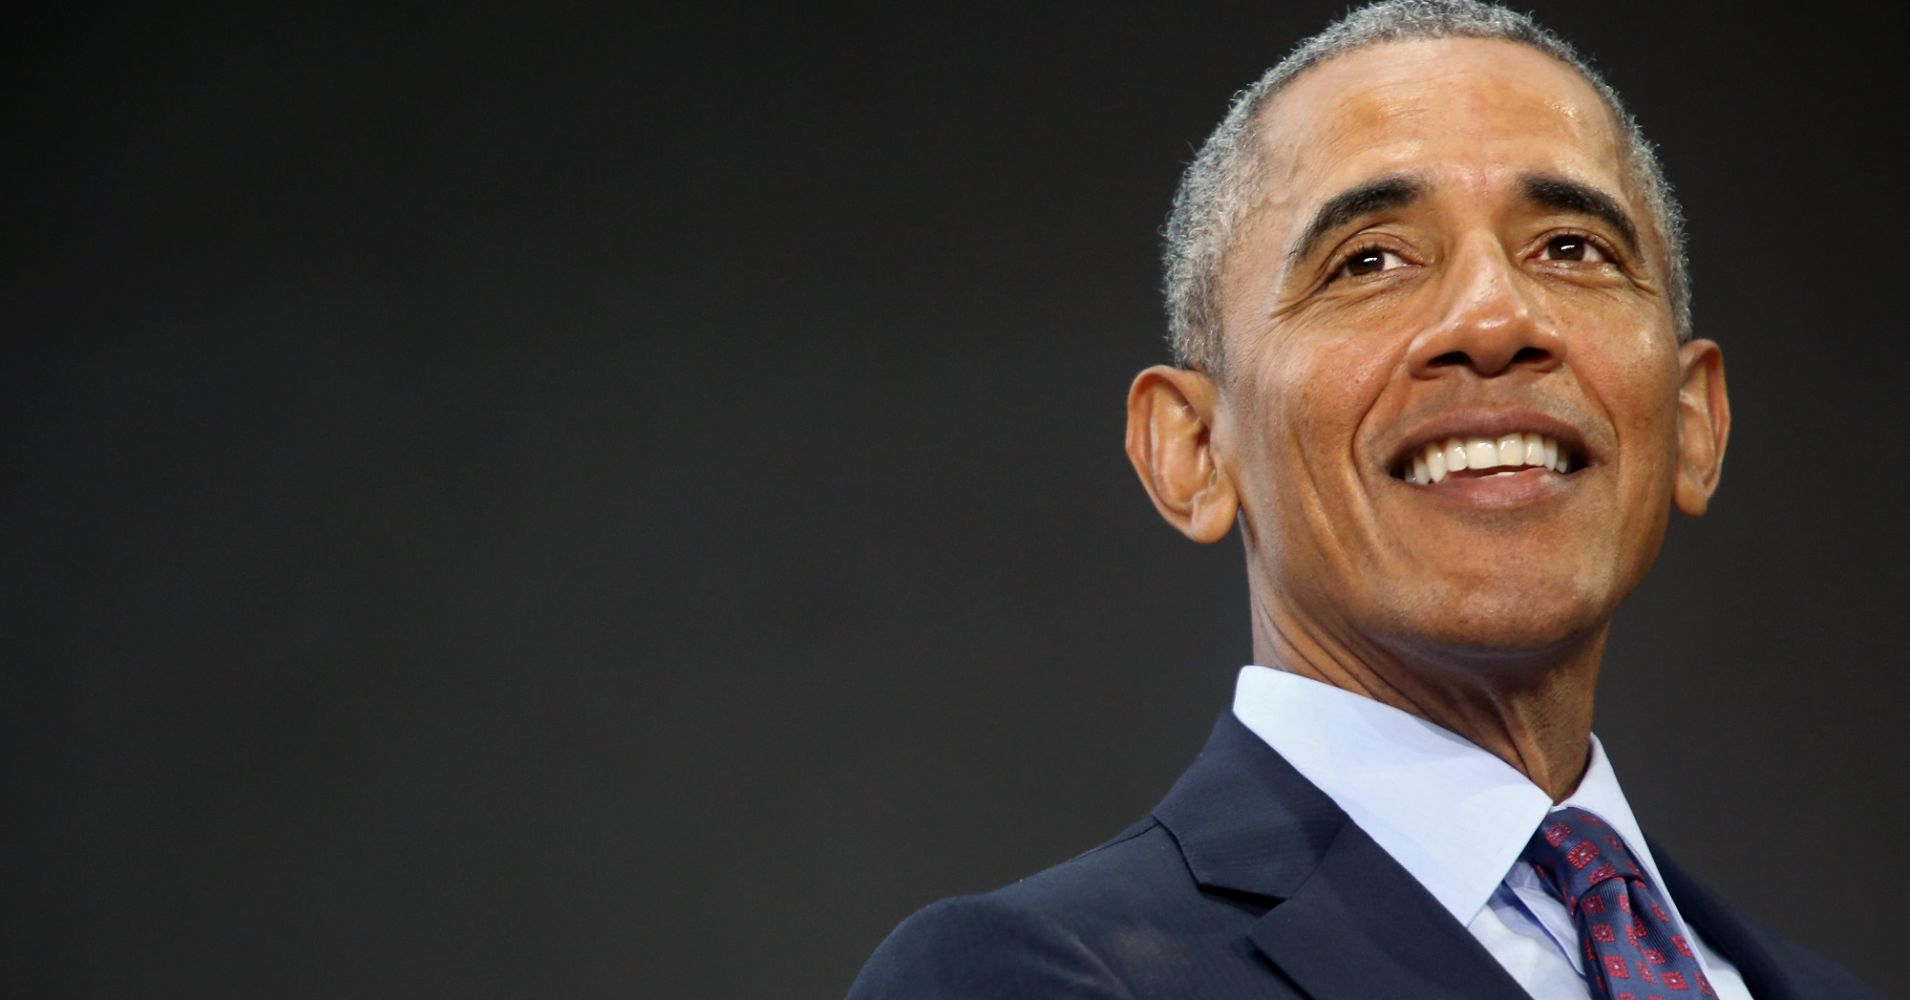 President Obama's 2018 movie list is quite stellar- we'd have a lot to talk about